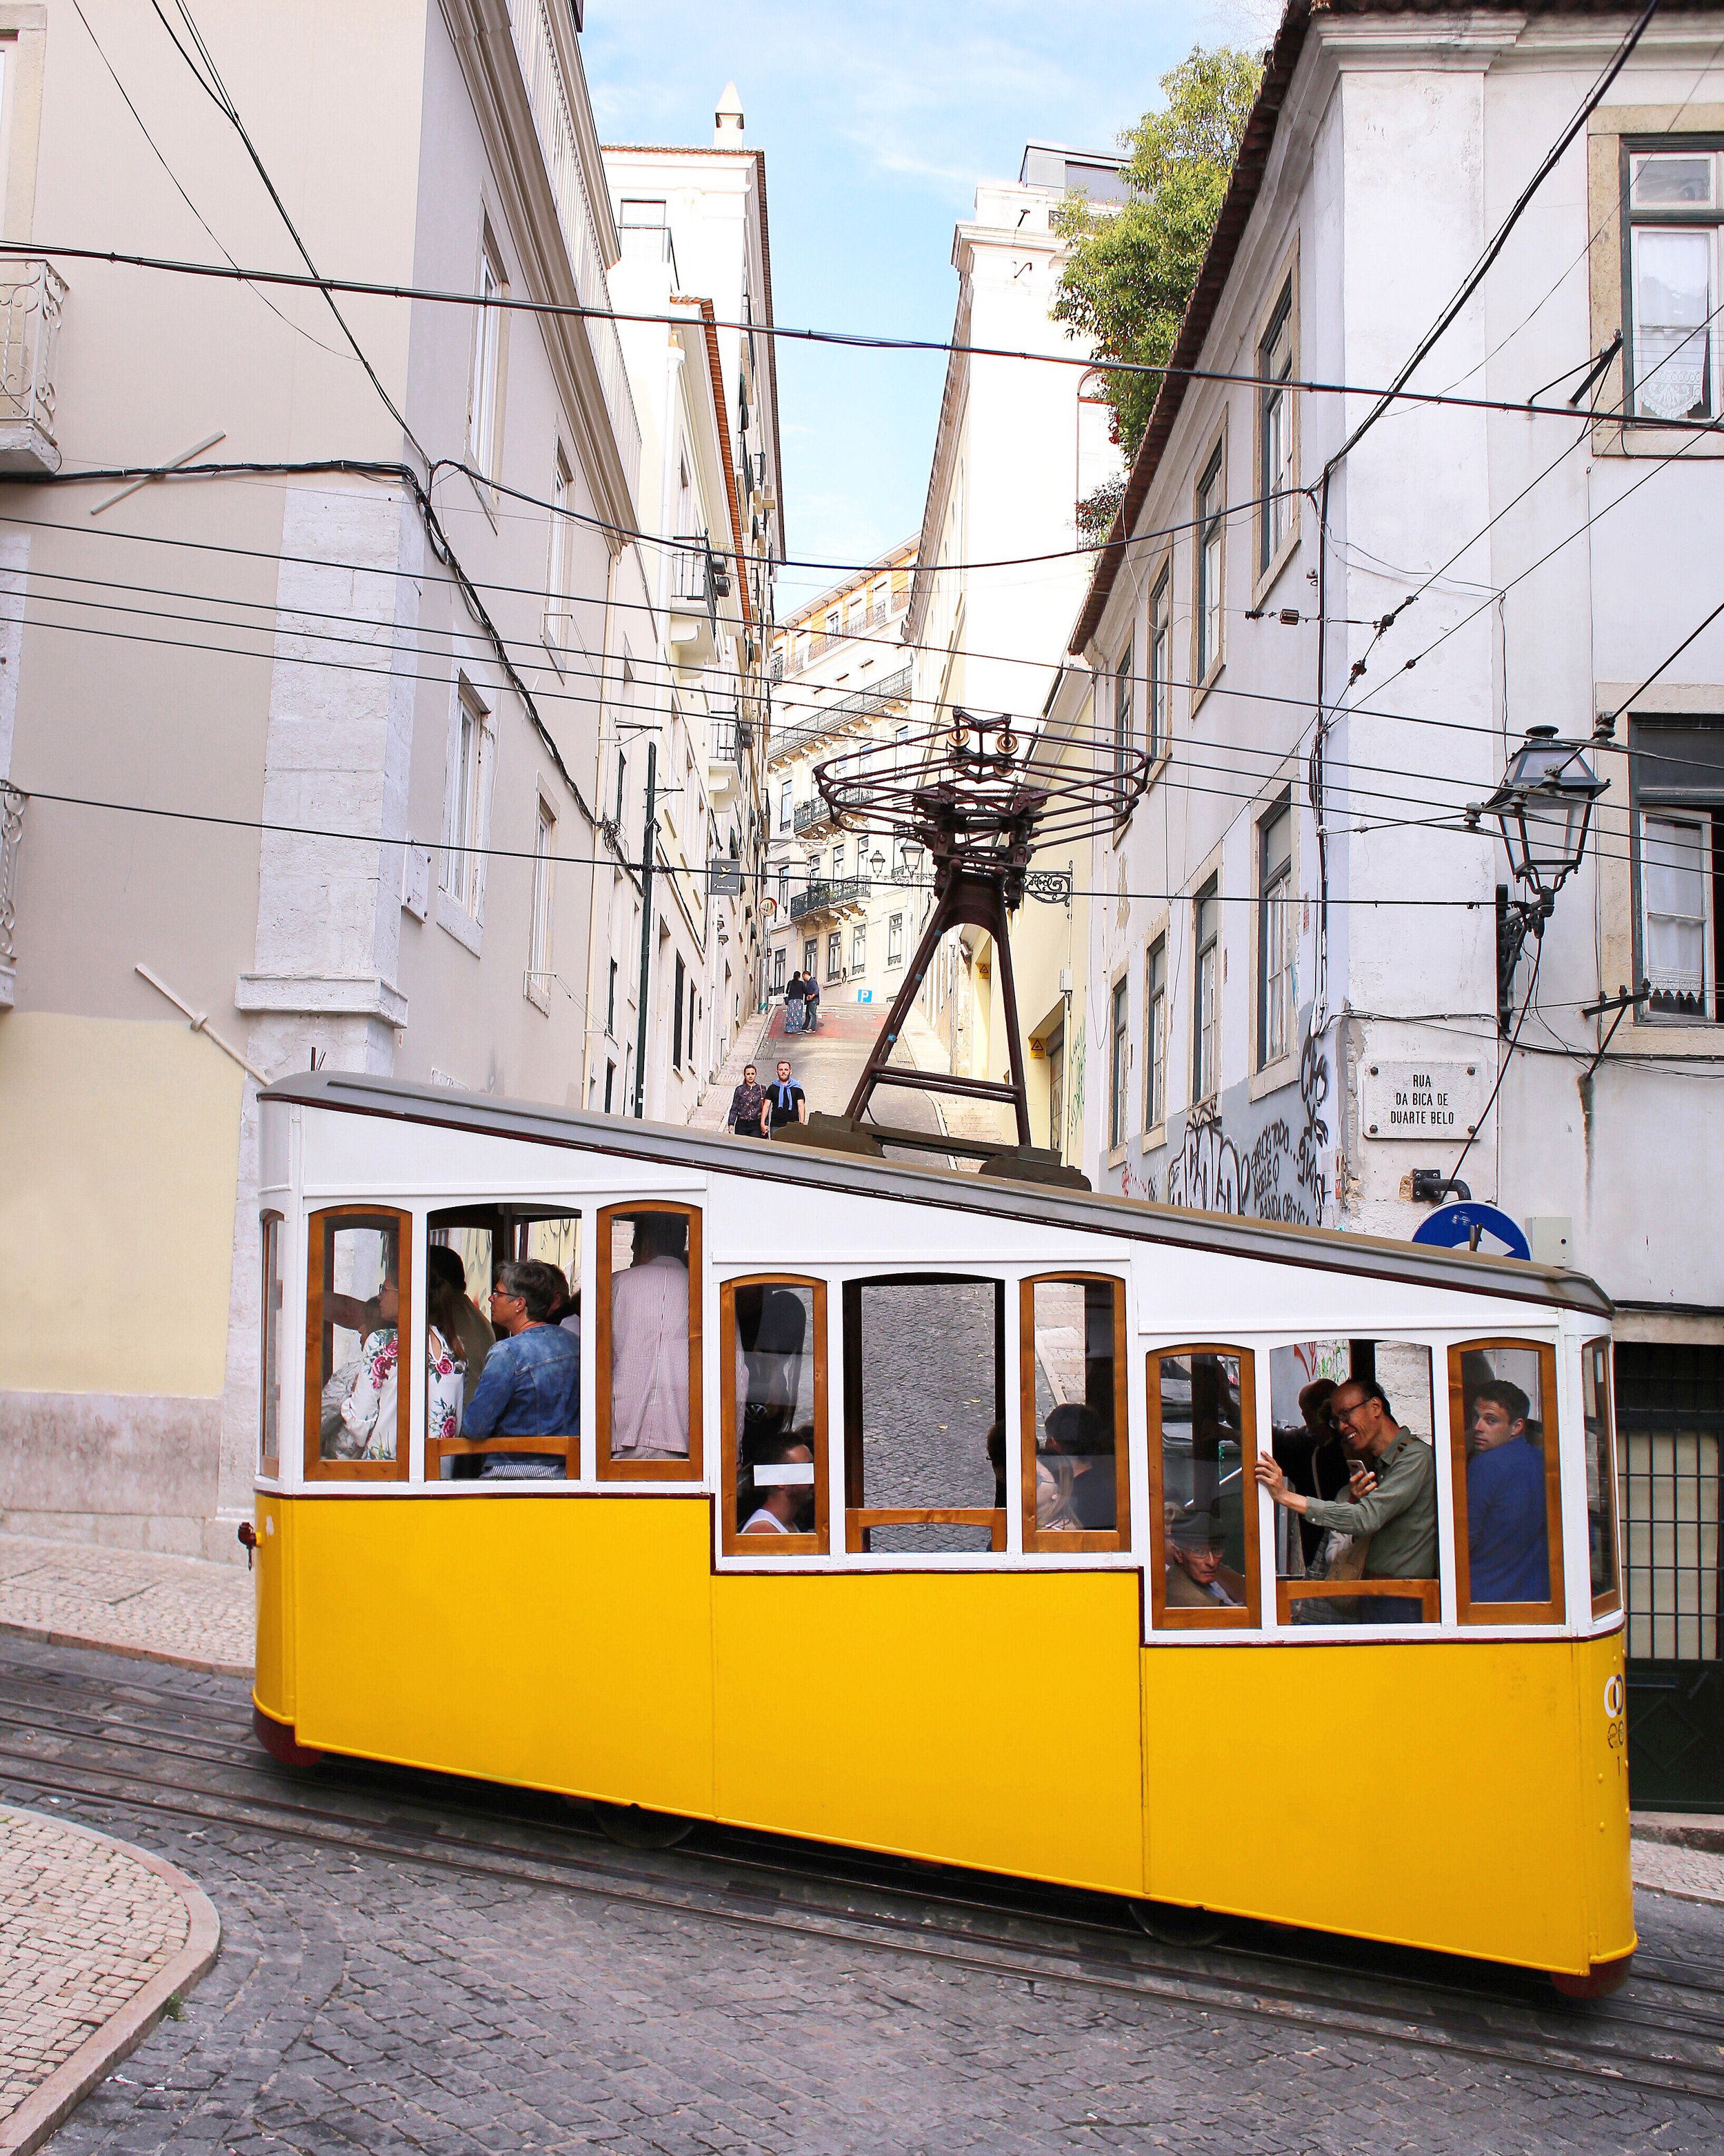 The   Ascensor Da Bica  is a funicular consisting of two adorable yellow tram cars that run up and down the hilly streets of Lisbon since 1892, transporting locals but mostly tourists these days.